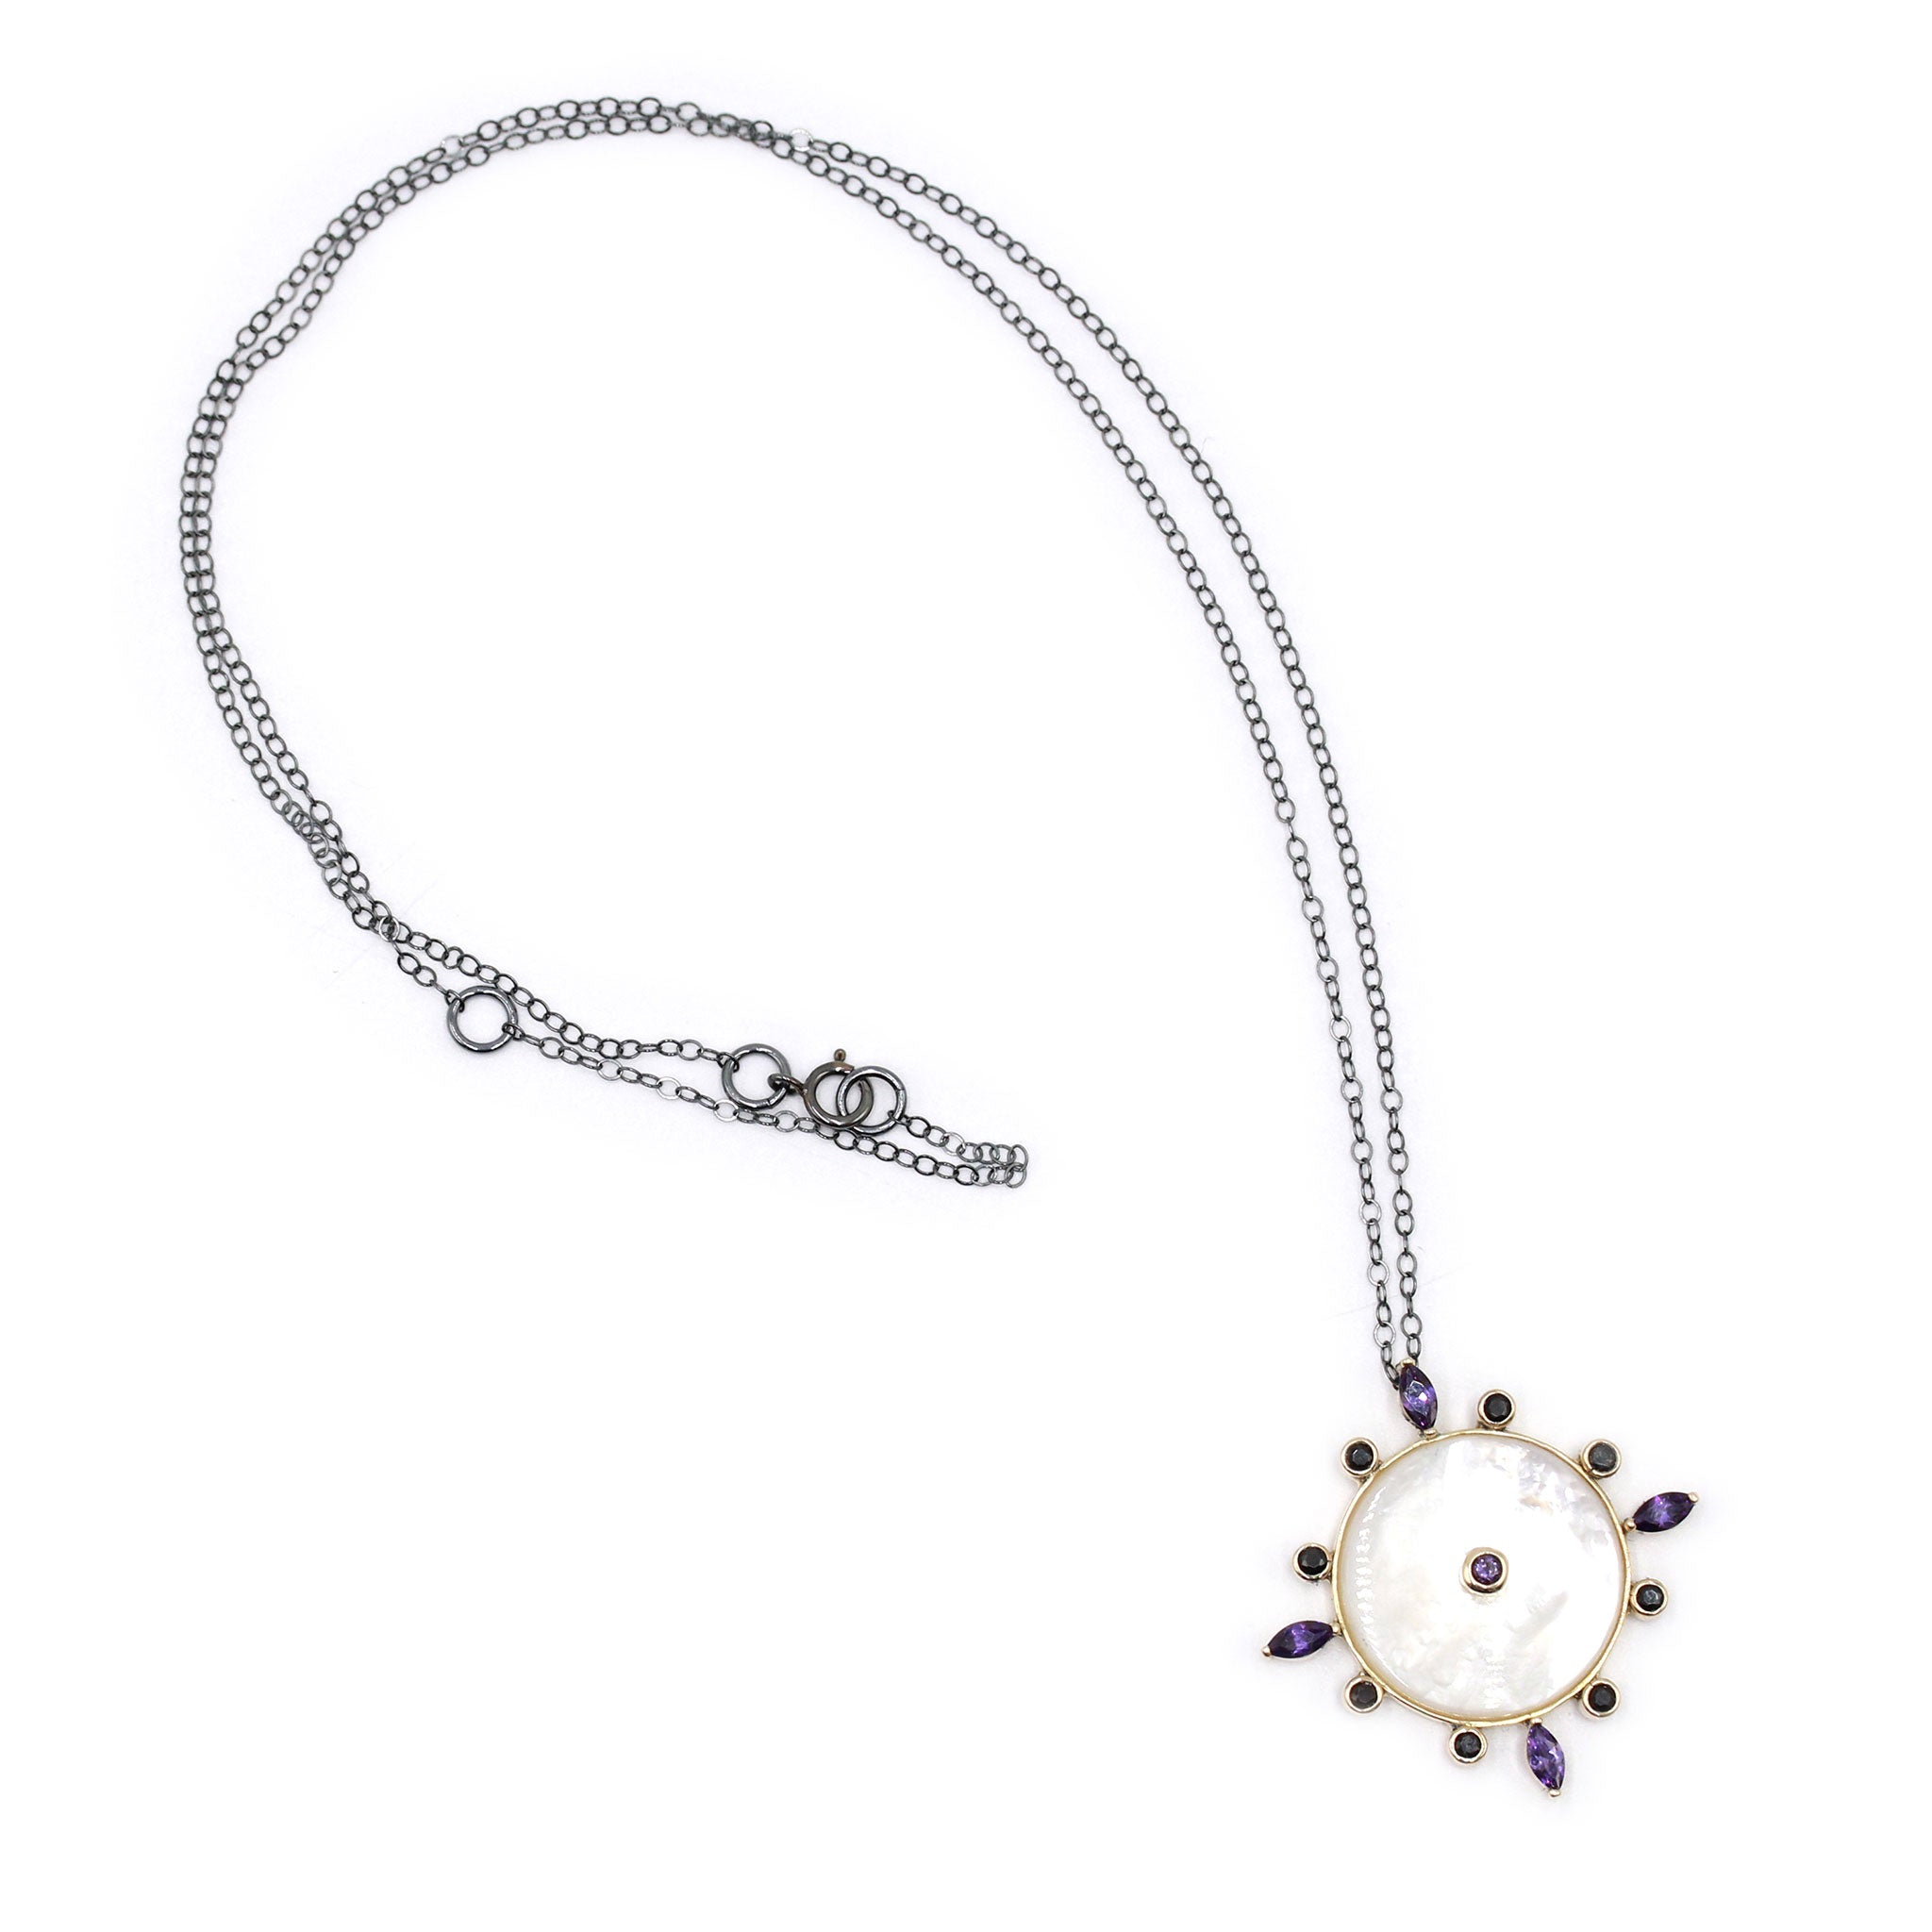 Talisman necklace with Mother of Pearl, Amethysts and Black diamonds in gold14k